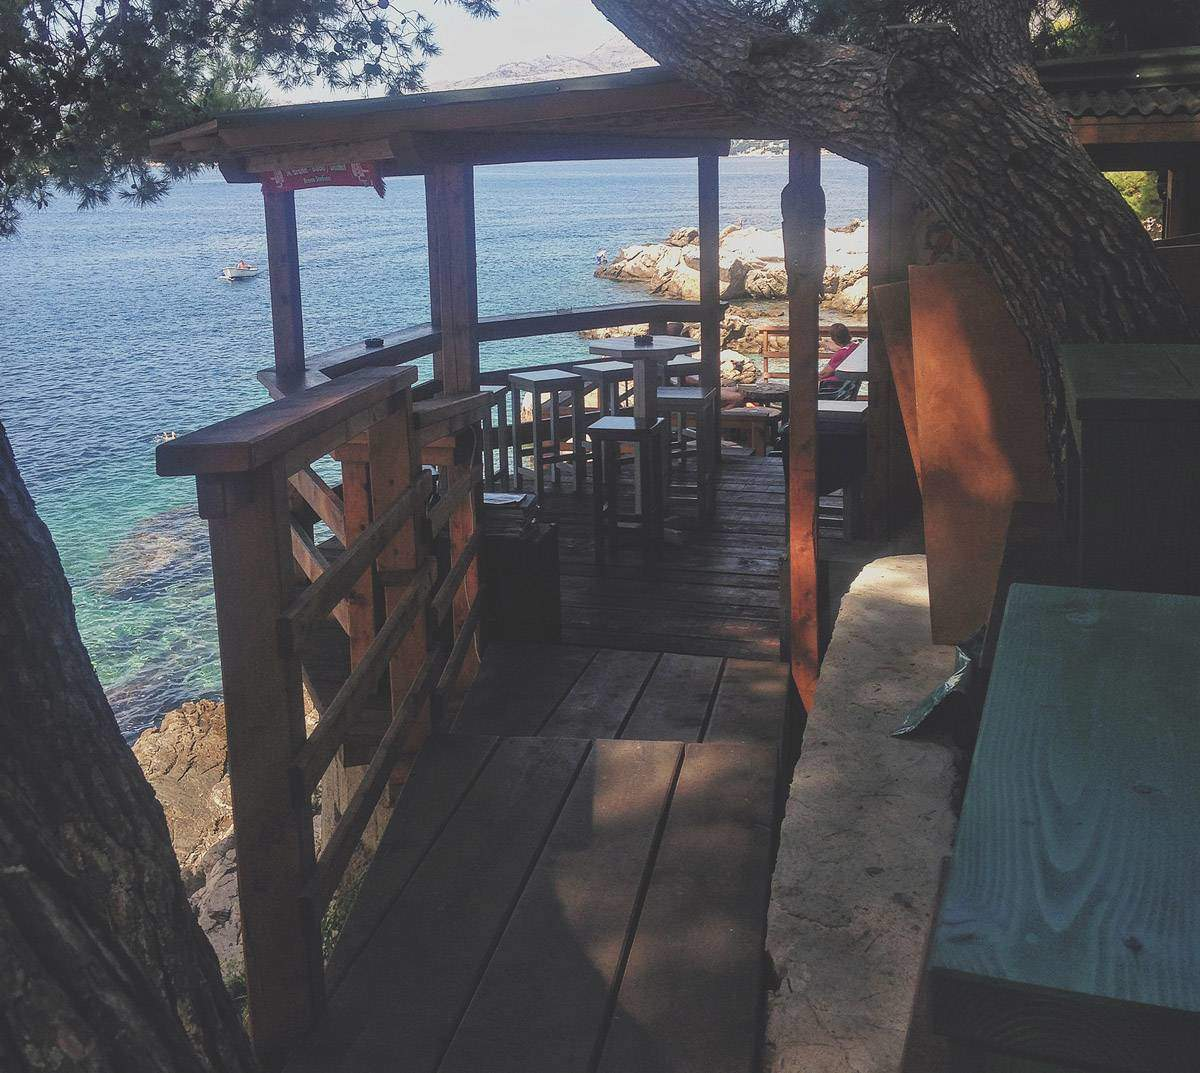 A bar in Cavtat, Croatia